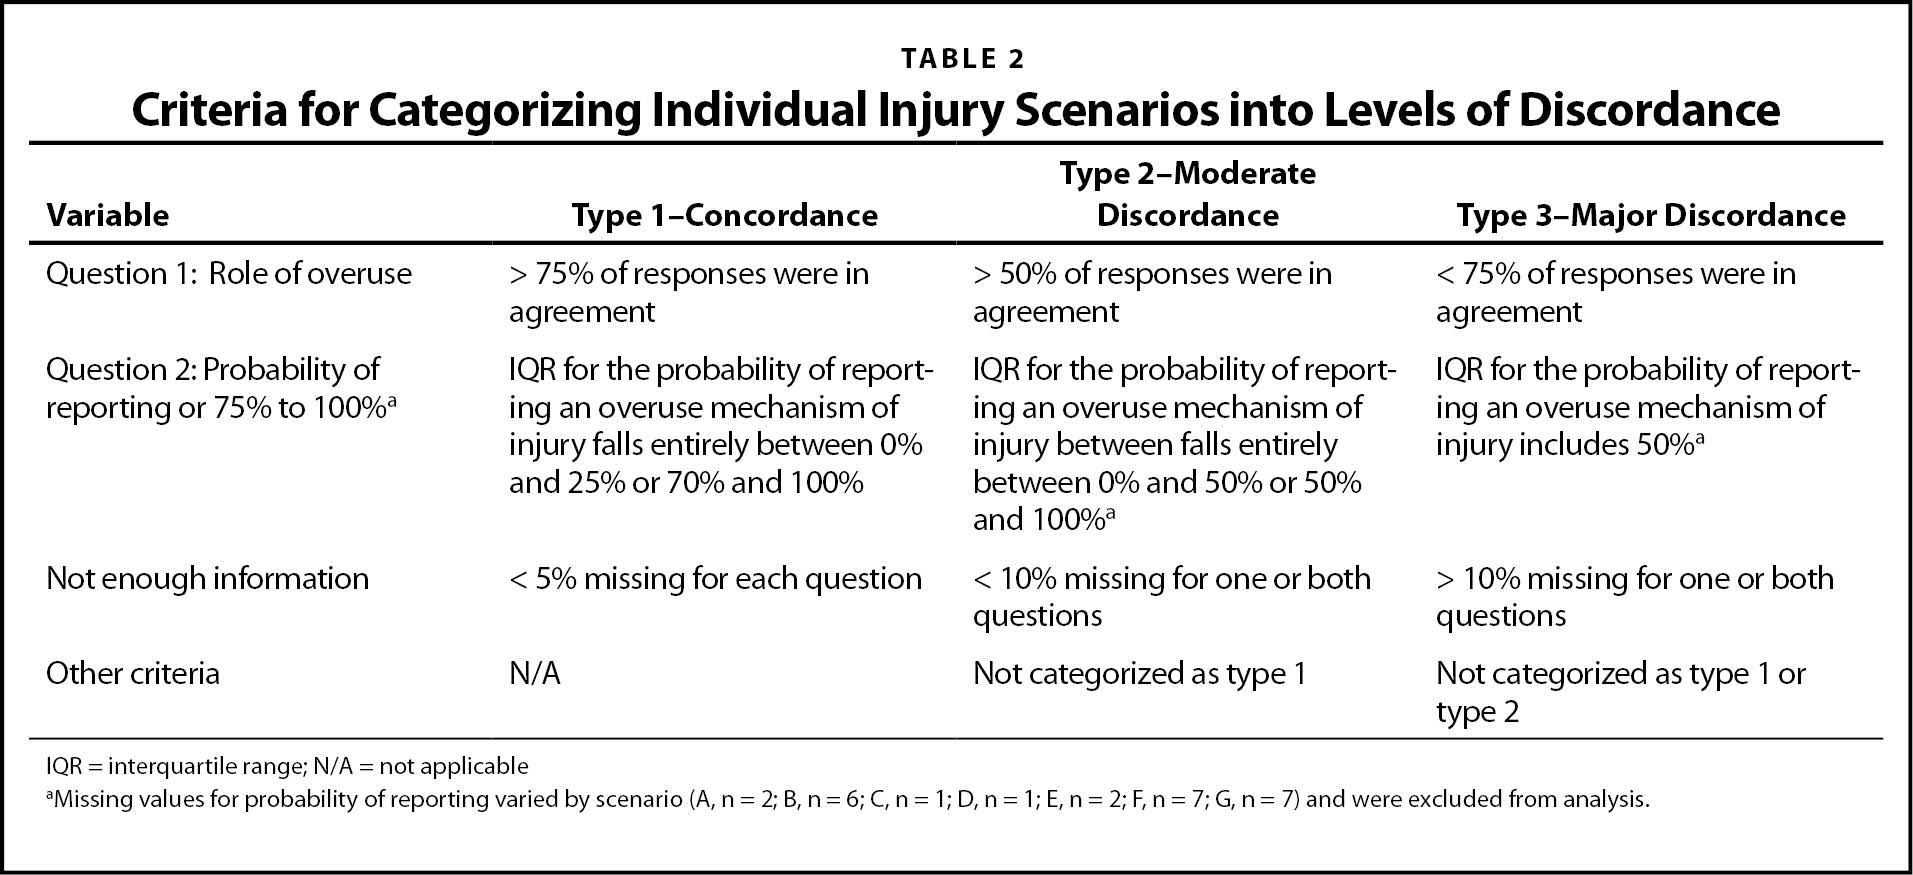 Criteria for Categorizing Individual Injury Scenarios into Levels of Discordance